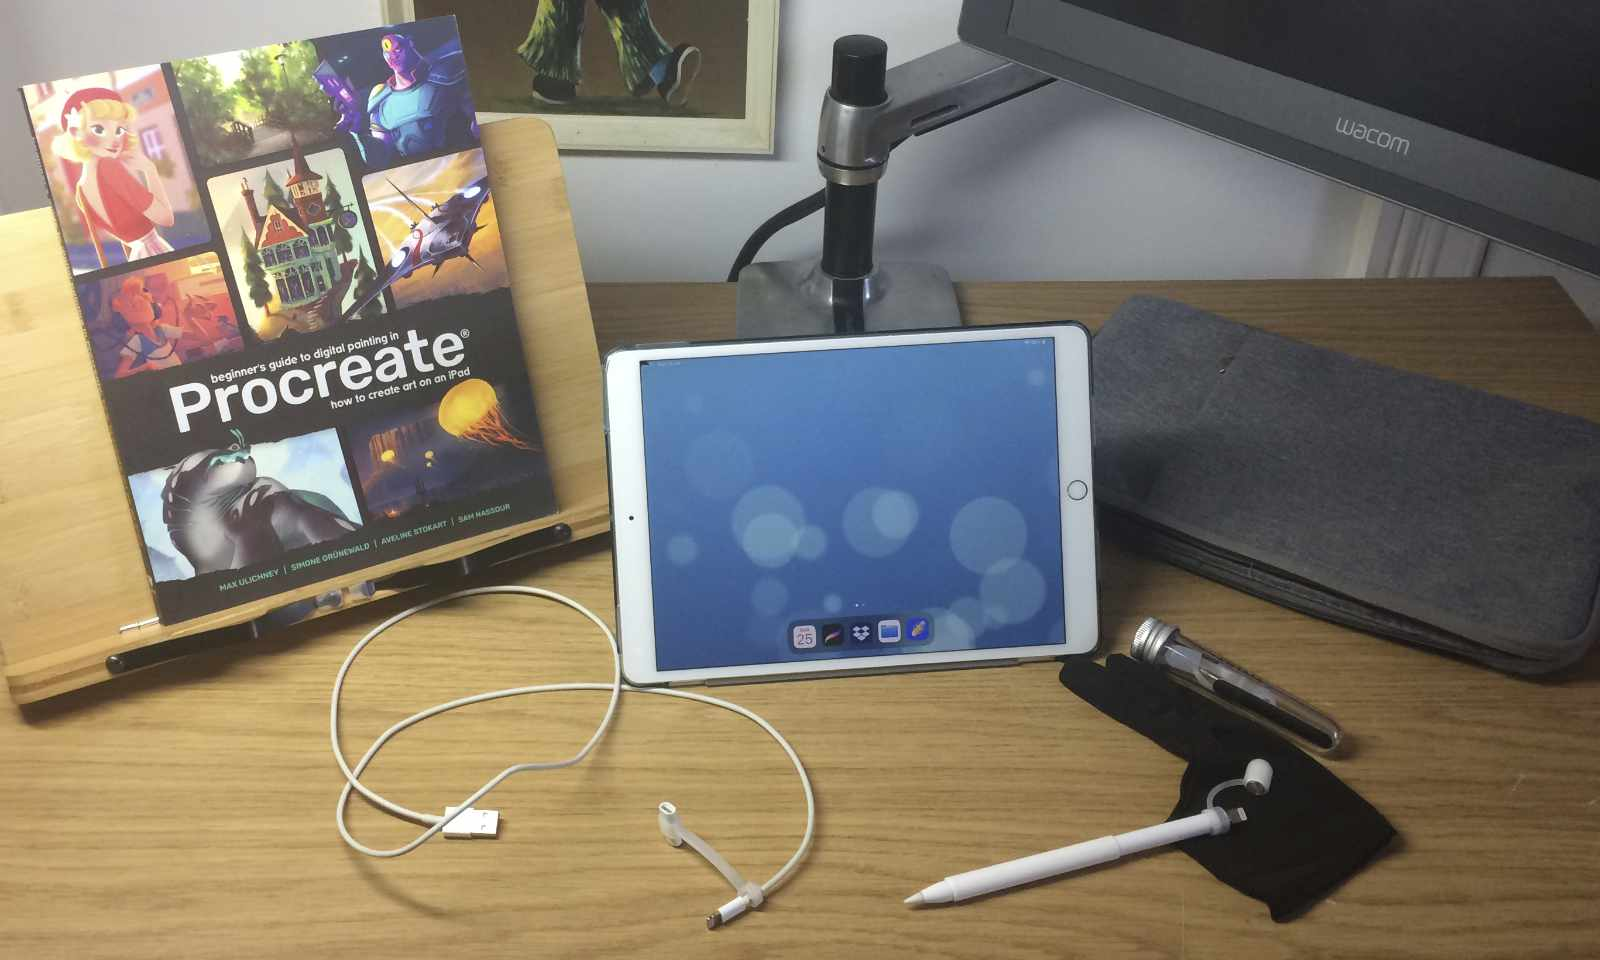 My iPad Pro and Tools - Learning Procreate Introduction with Artist Sophie Lawson